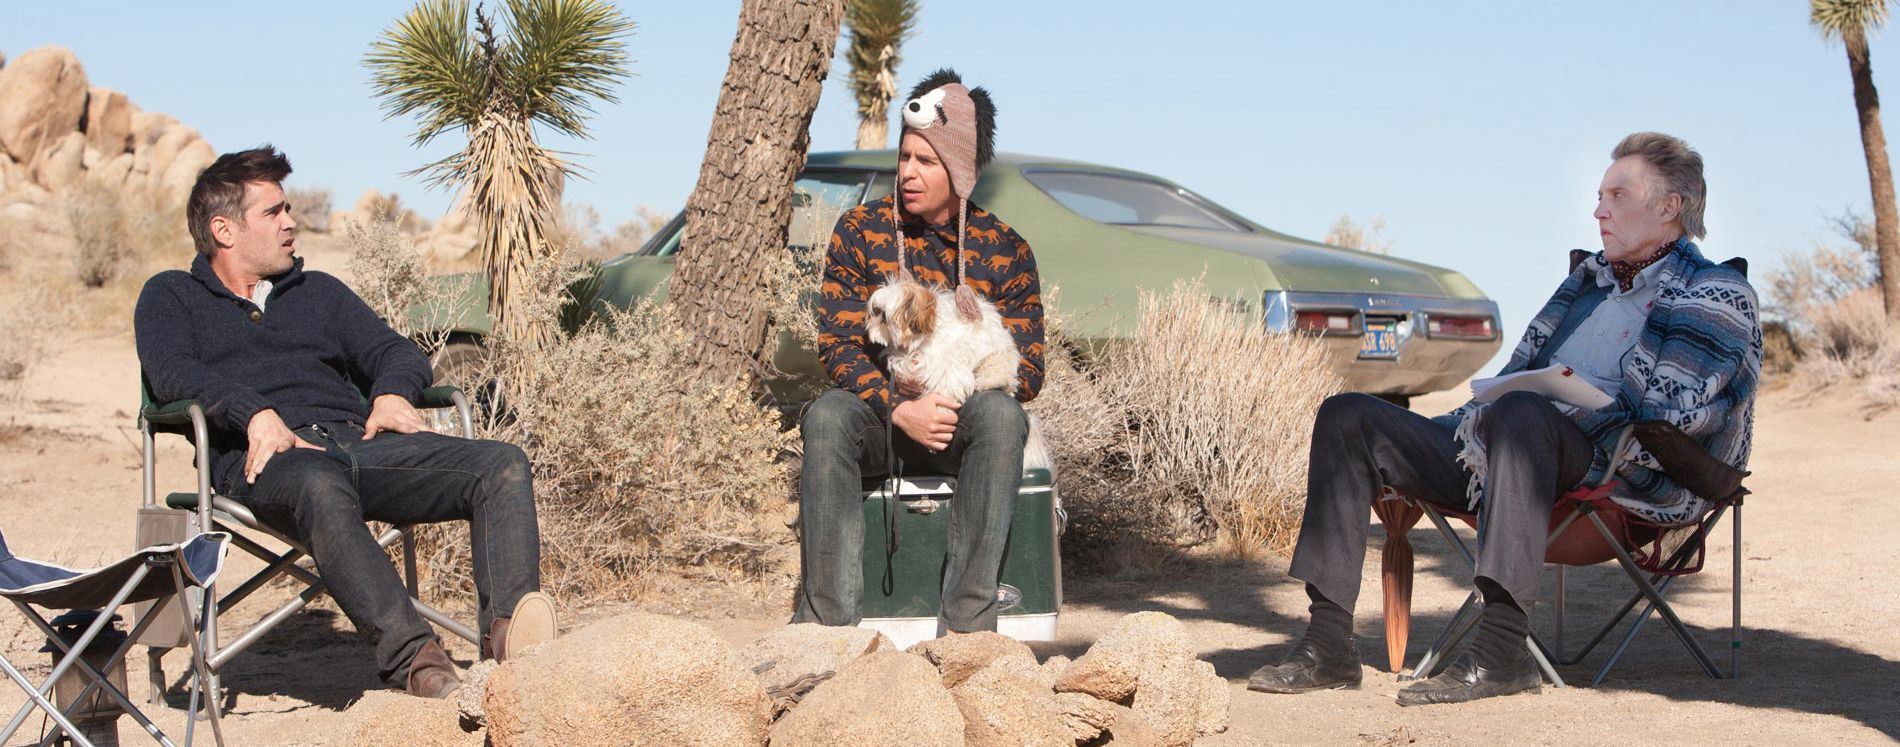 An image from Seven Psychopaths